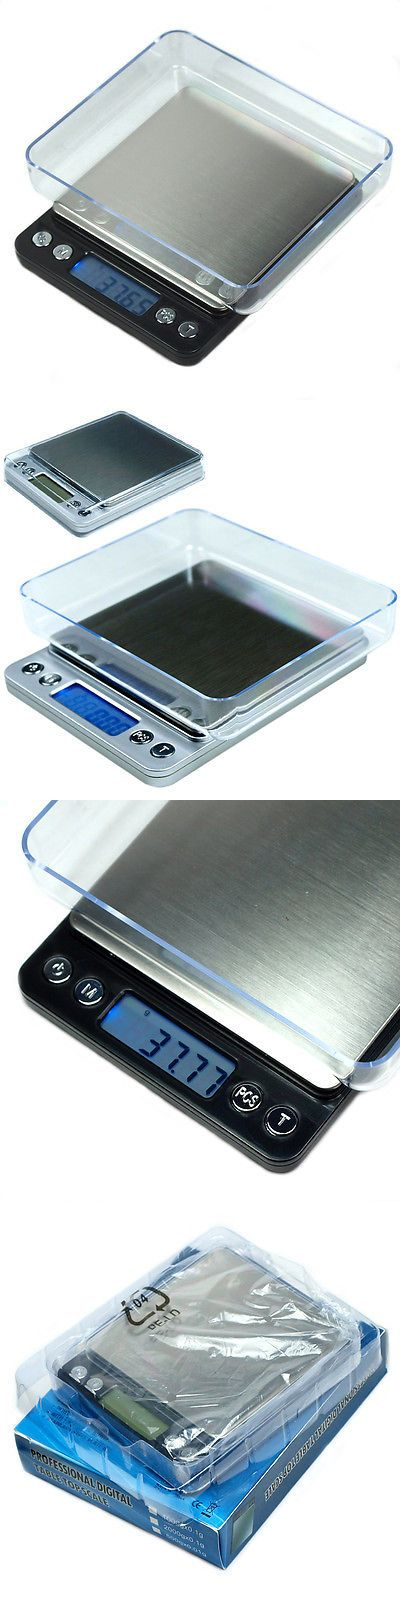 ACCT-500 500g x 0.01g Portable High Precision Digital Scale with Trays